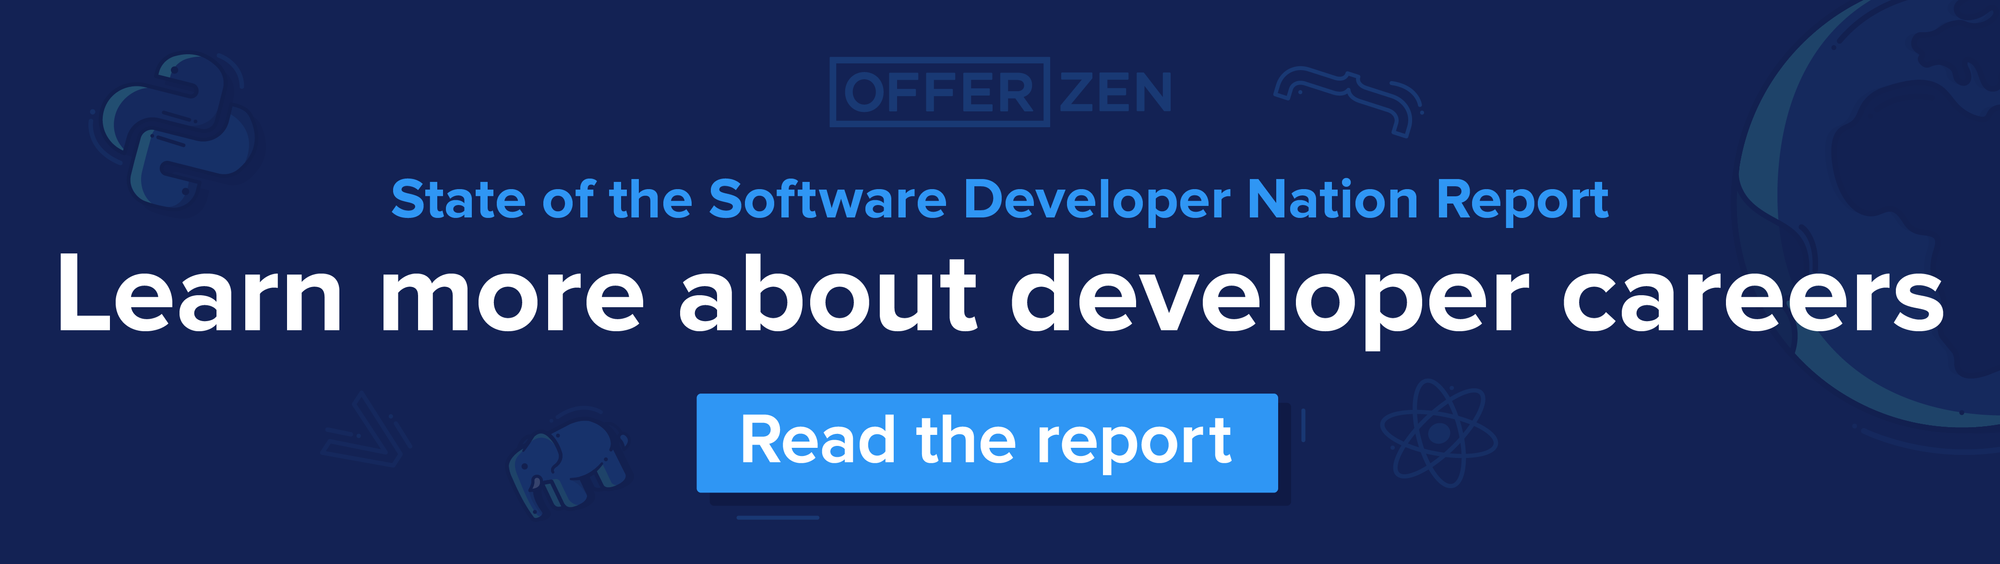 OfferZen_2021_State-of-the-Software-Developer-Nation-Report_Inner-article-CTA_Developer-careers-76